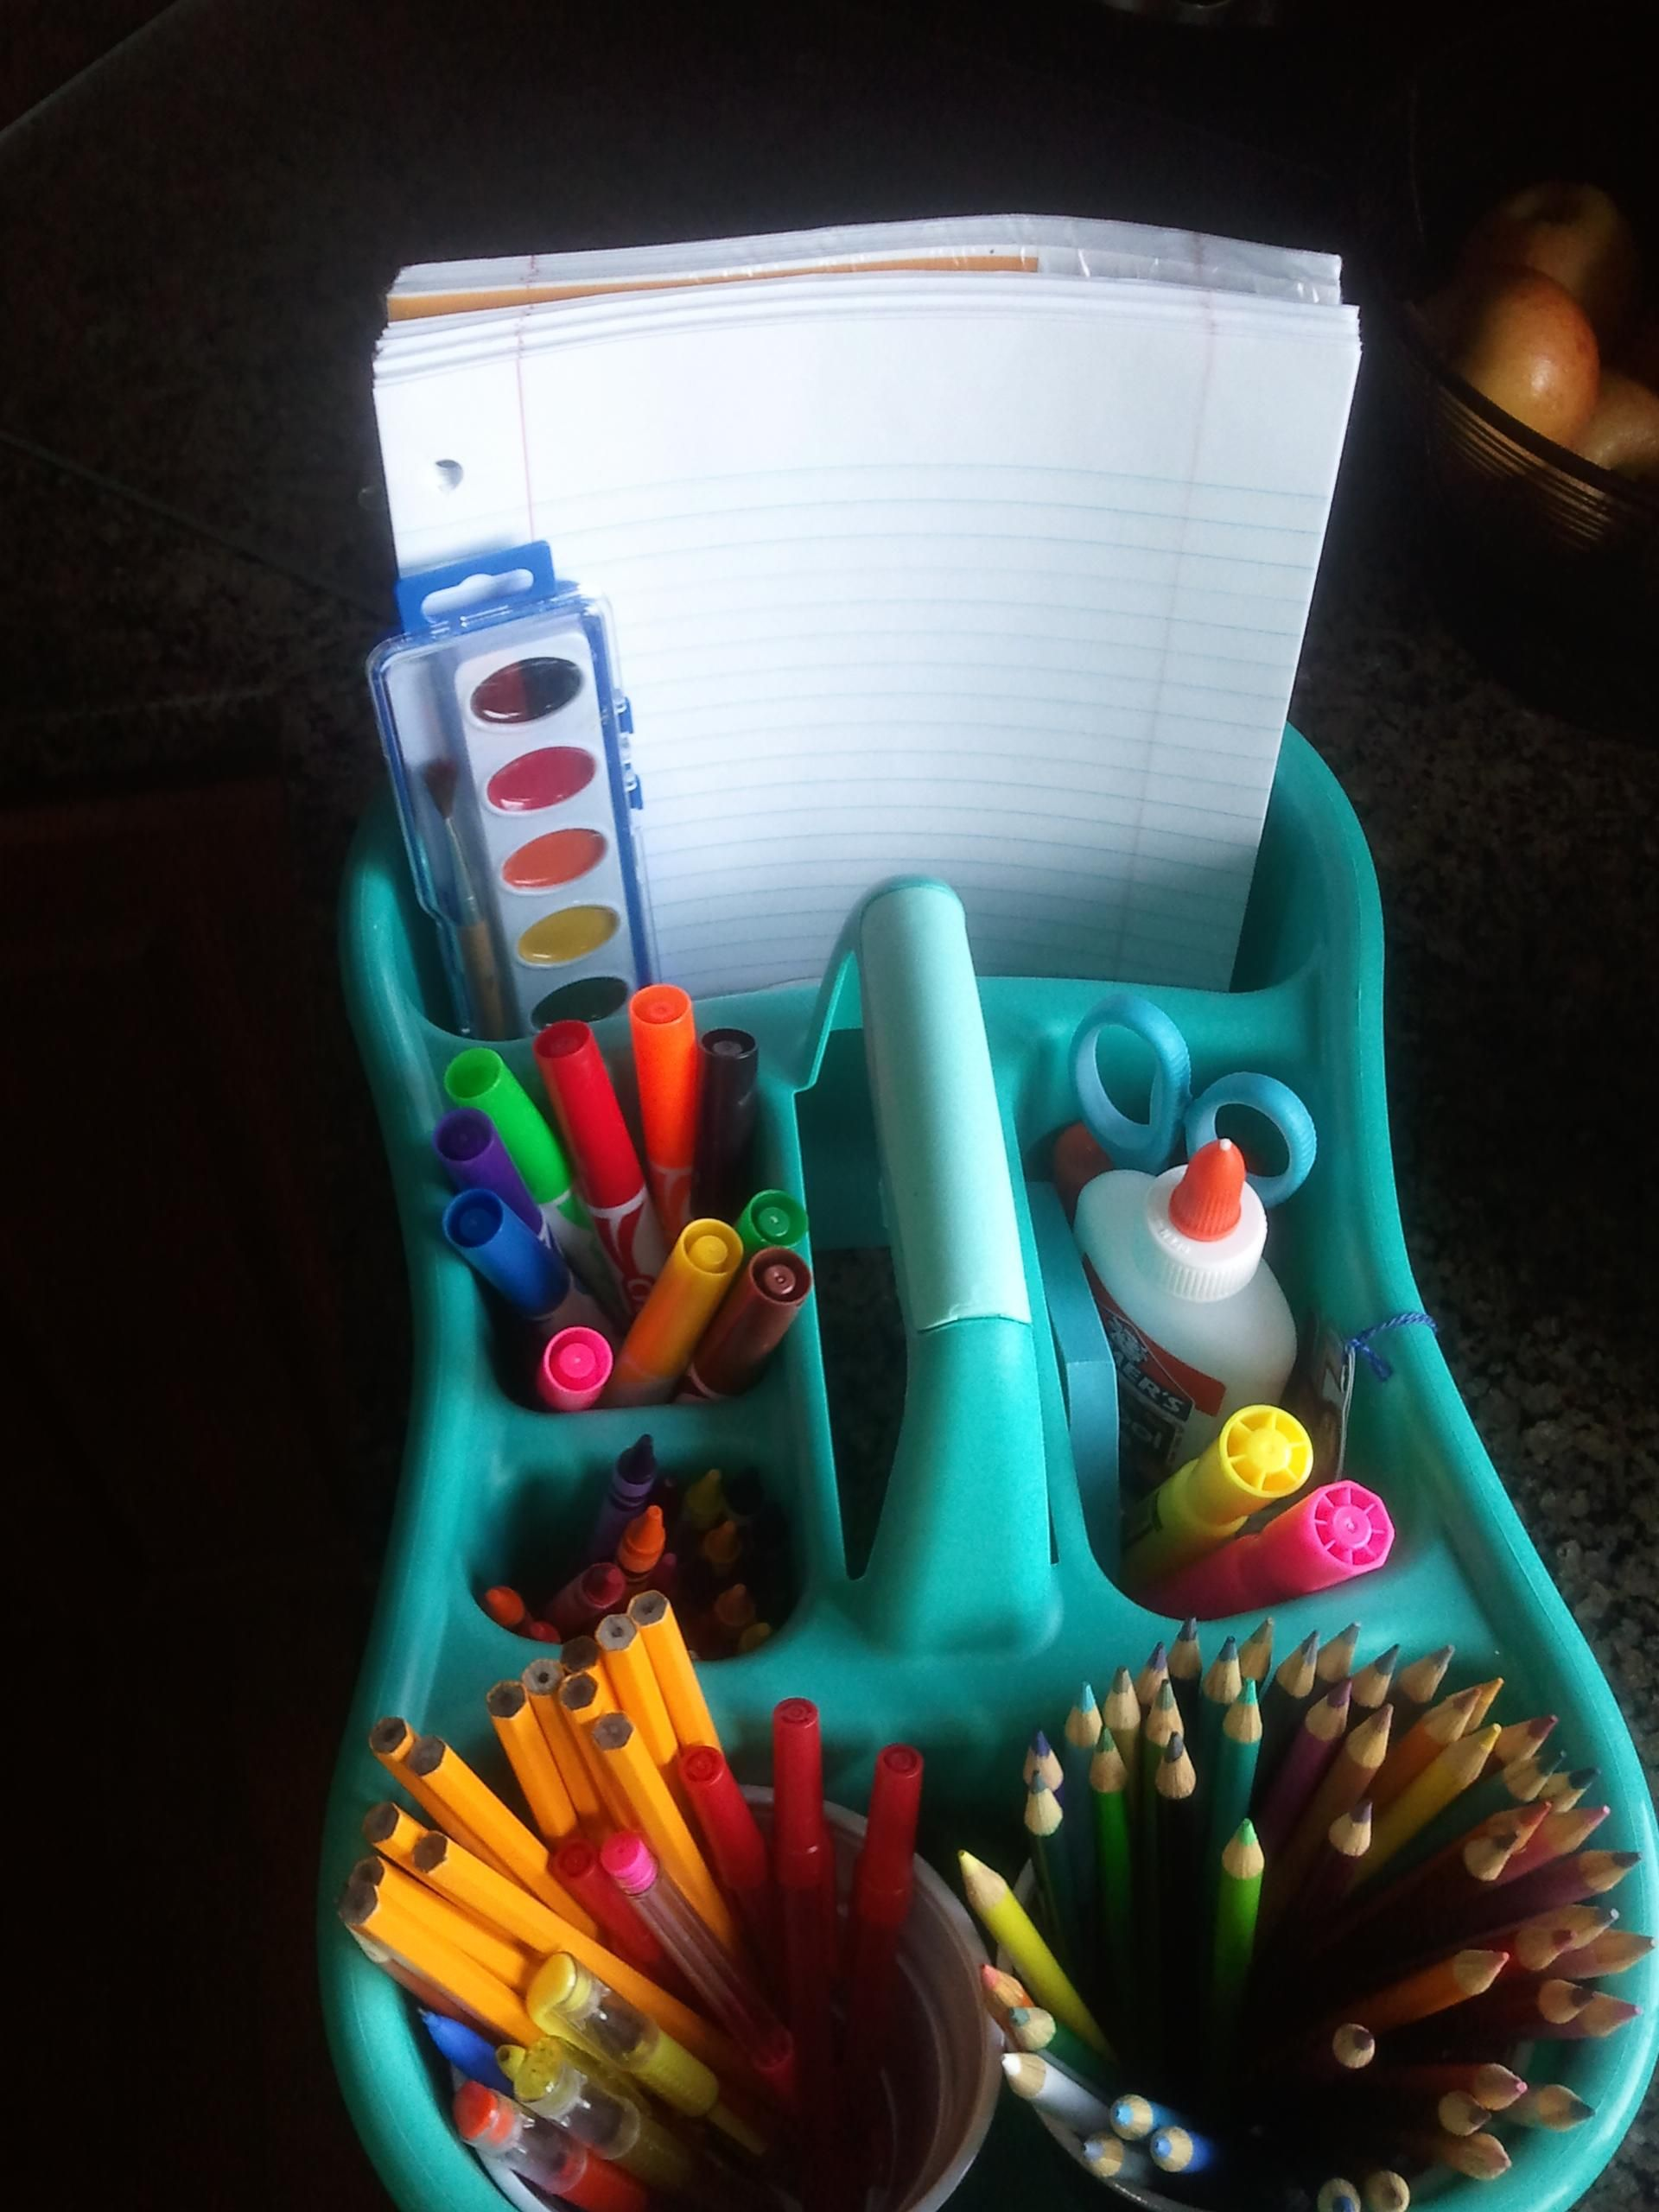 Bath bins on sale for $2 and school supplies clearanced make a great ...